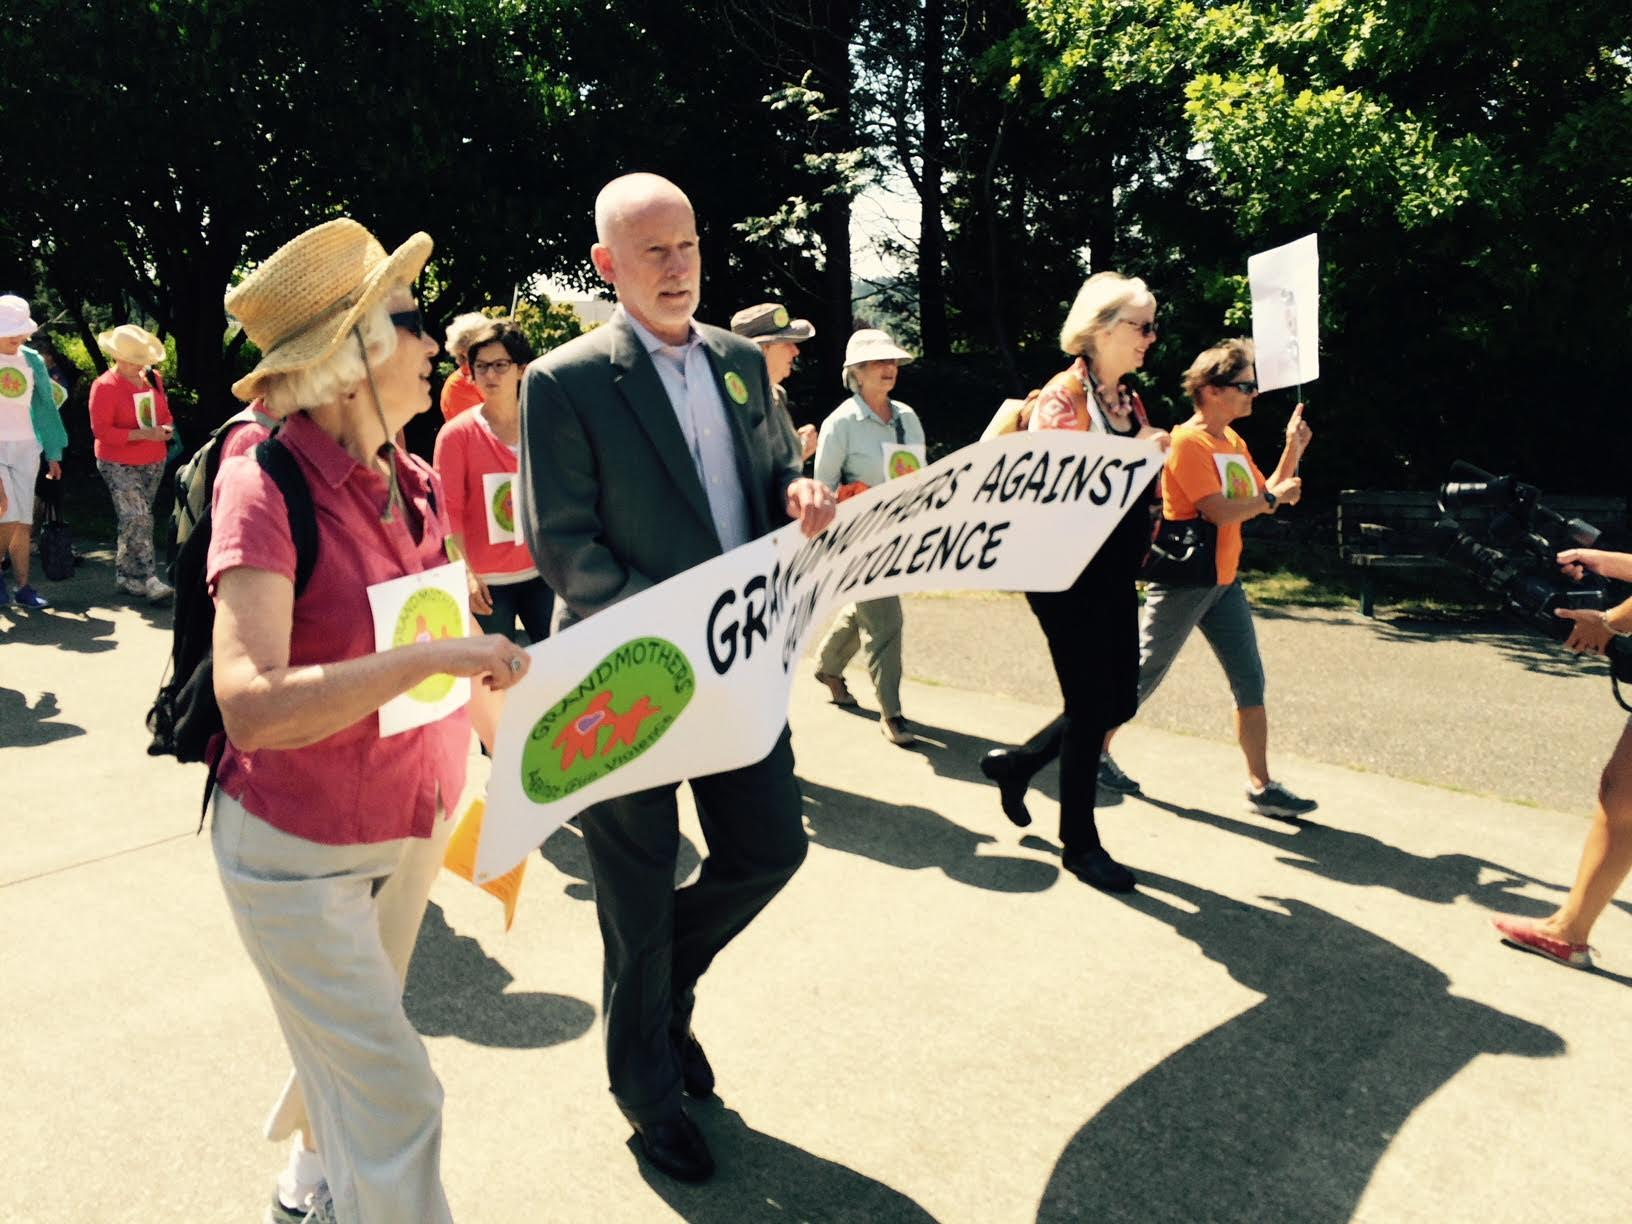 Marching to City Hall with (then) City Council President, Tim Burgess.